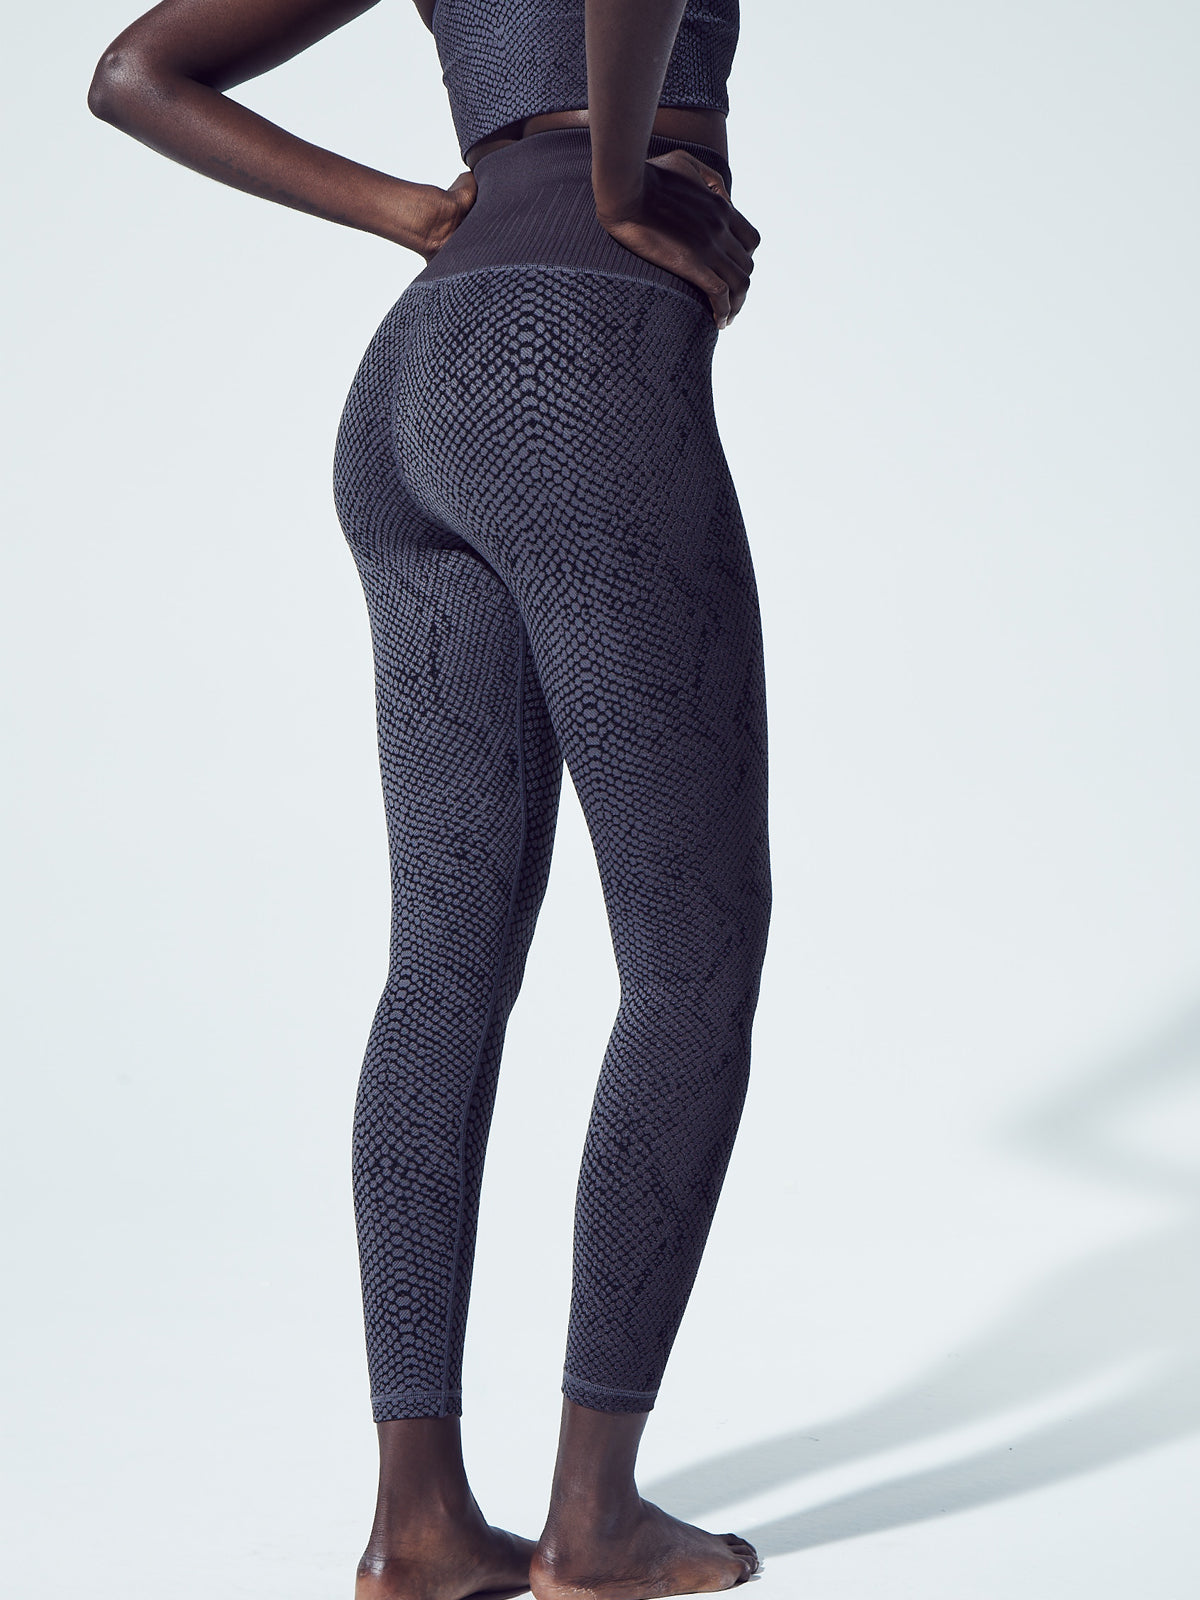 Snake Fire Legging in Charcoal